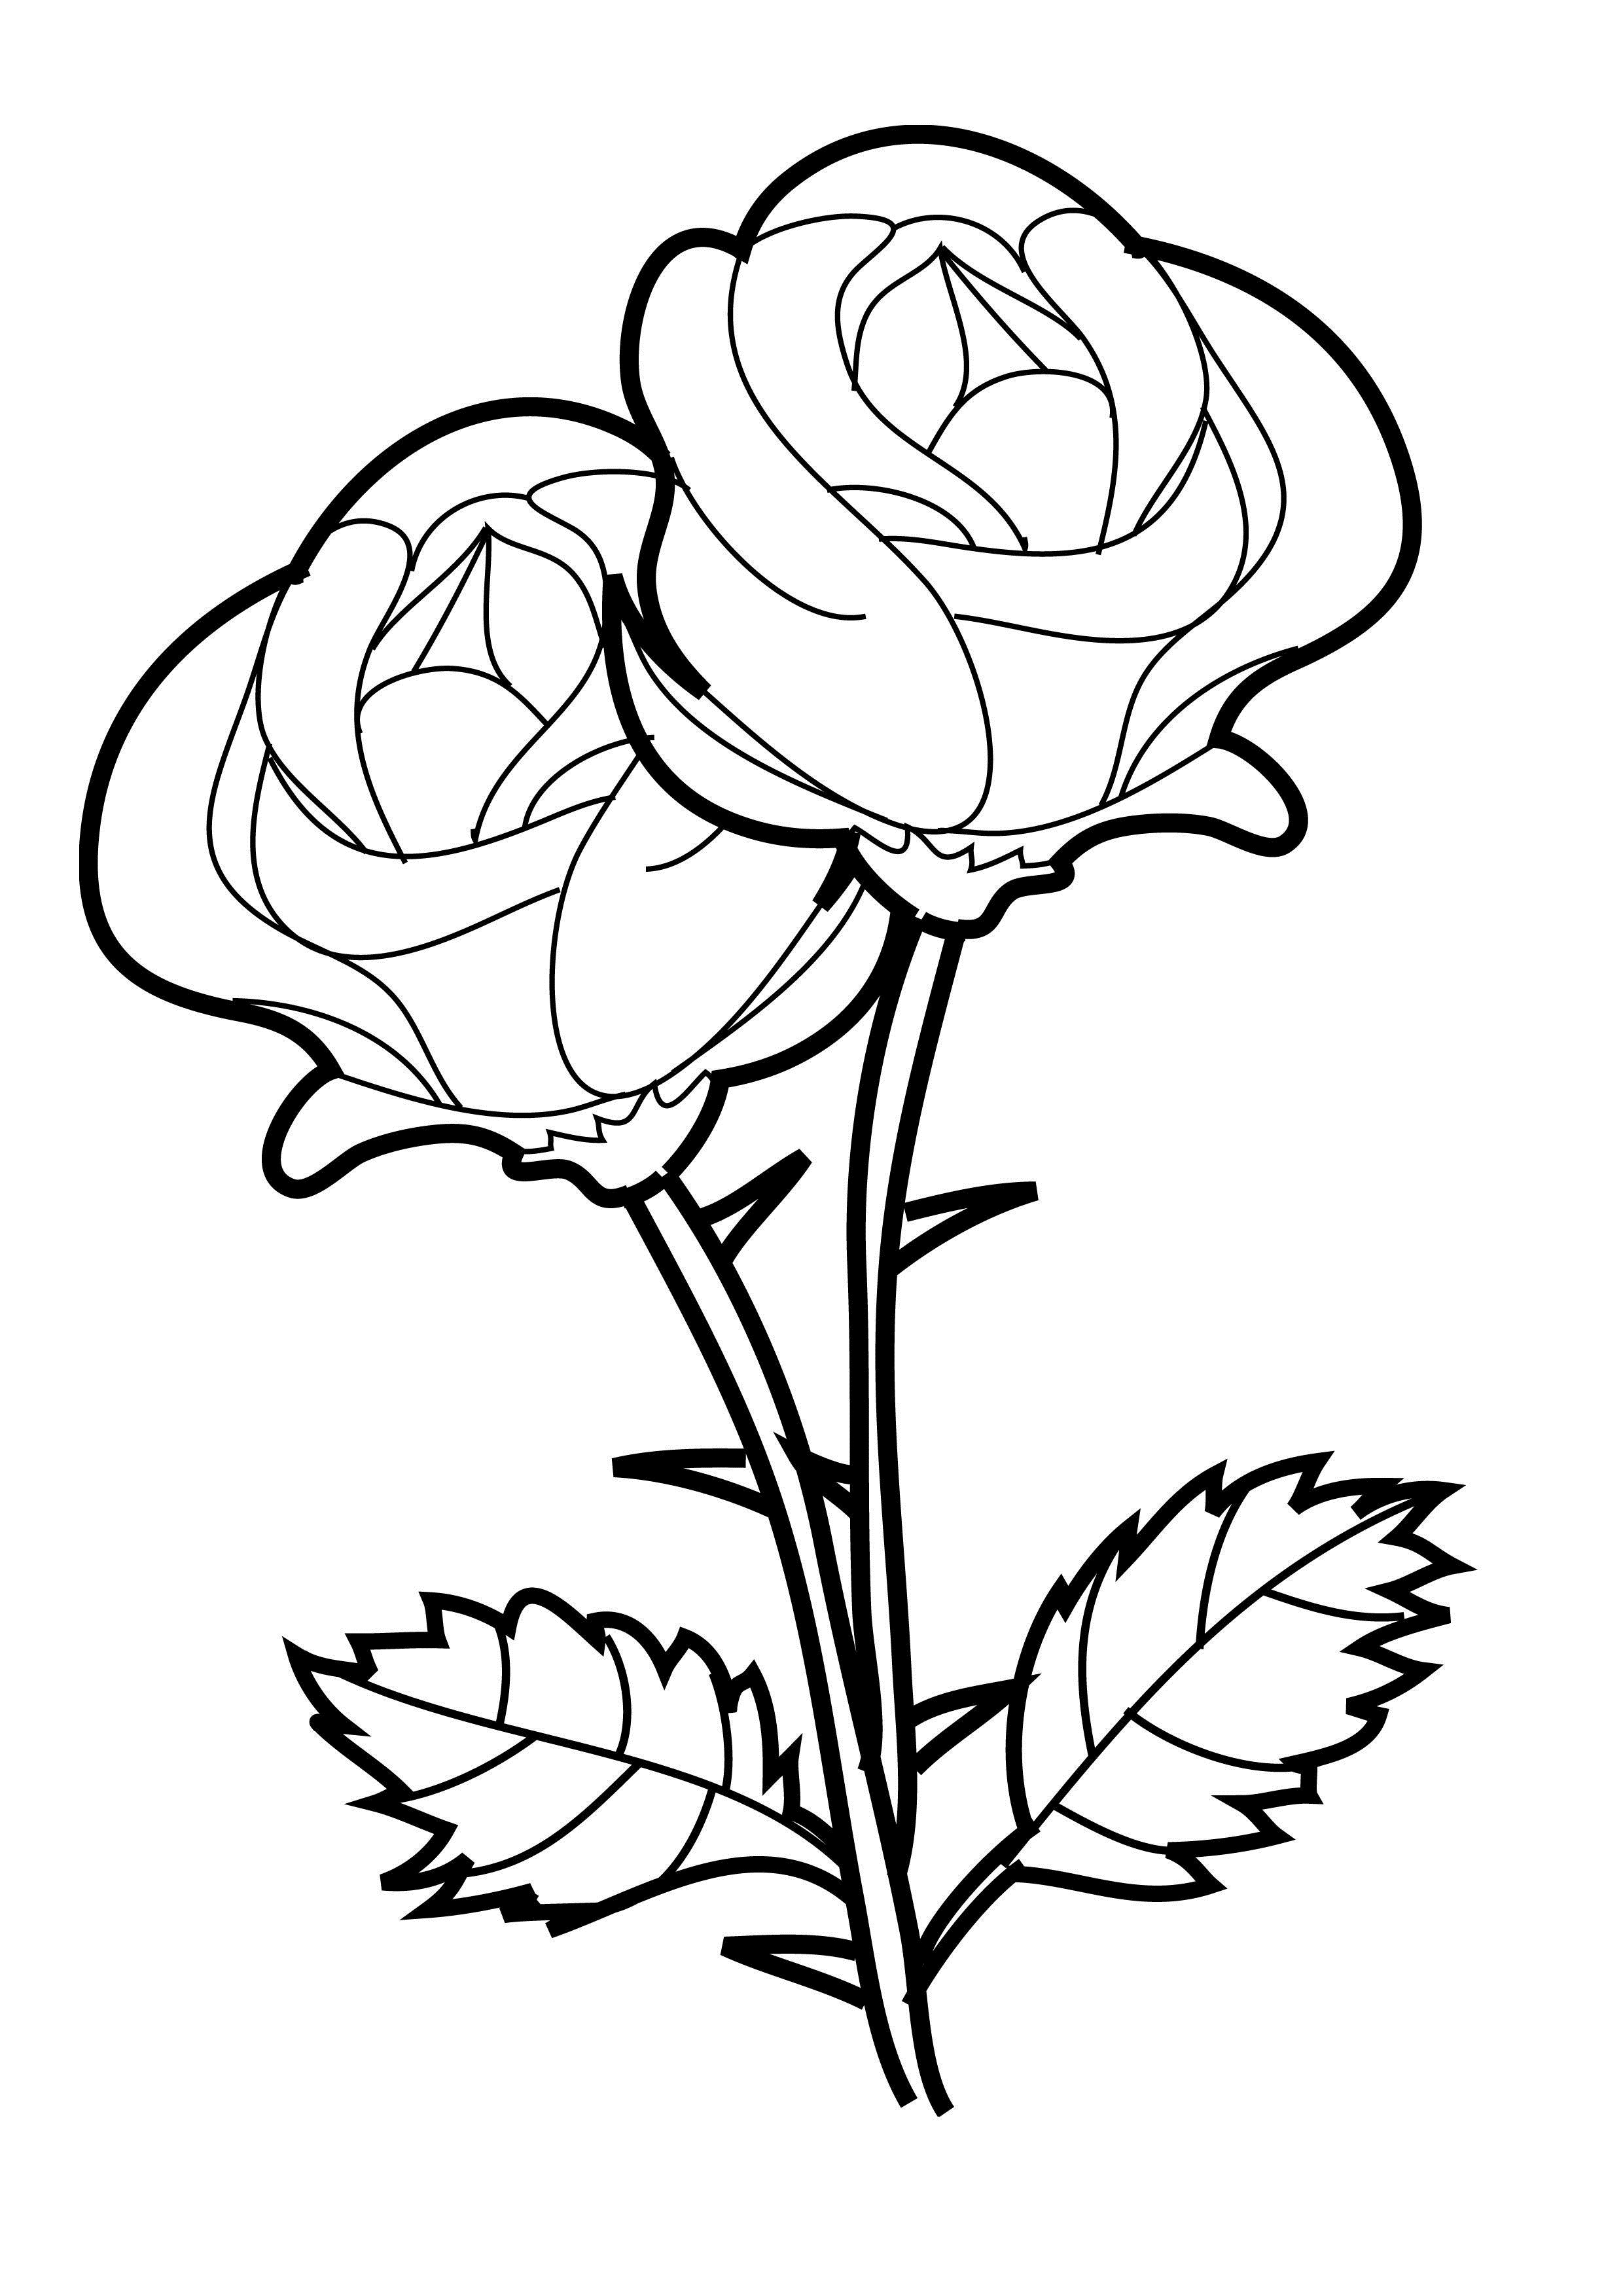 2480x3508 Free Printable Roses Coloring Pages For Kids Coloring Pages Roses